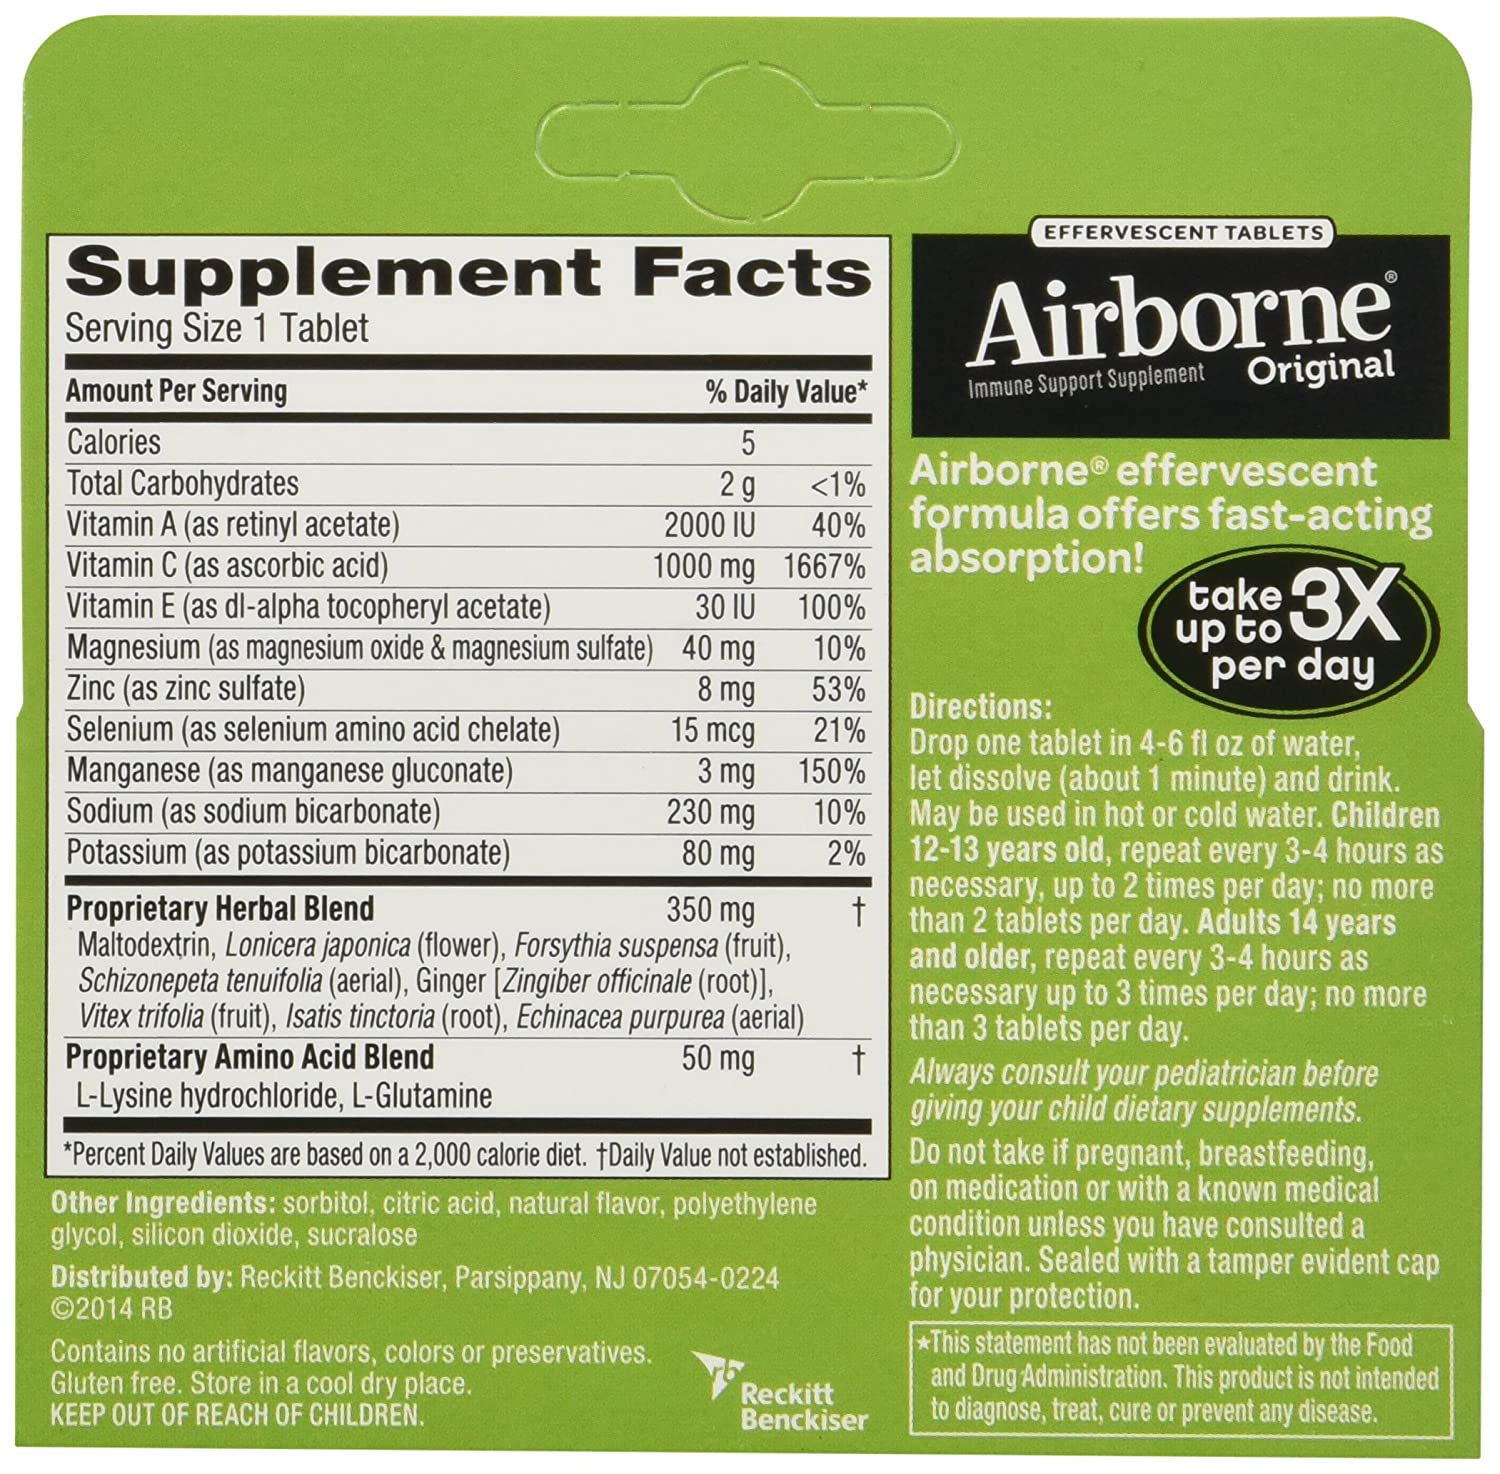 Amazon.com: Airborne Vitamin C 1000mg Immune Support Supplement, Effervescent Formula Lemon-lime 2Pack (72 Count Tablets Total) Mk#!jd: Health & Personal ...